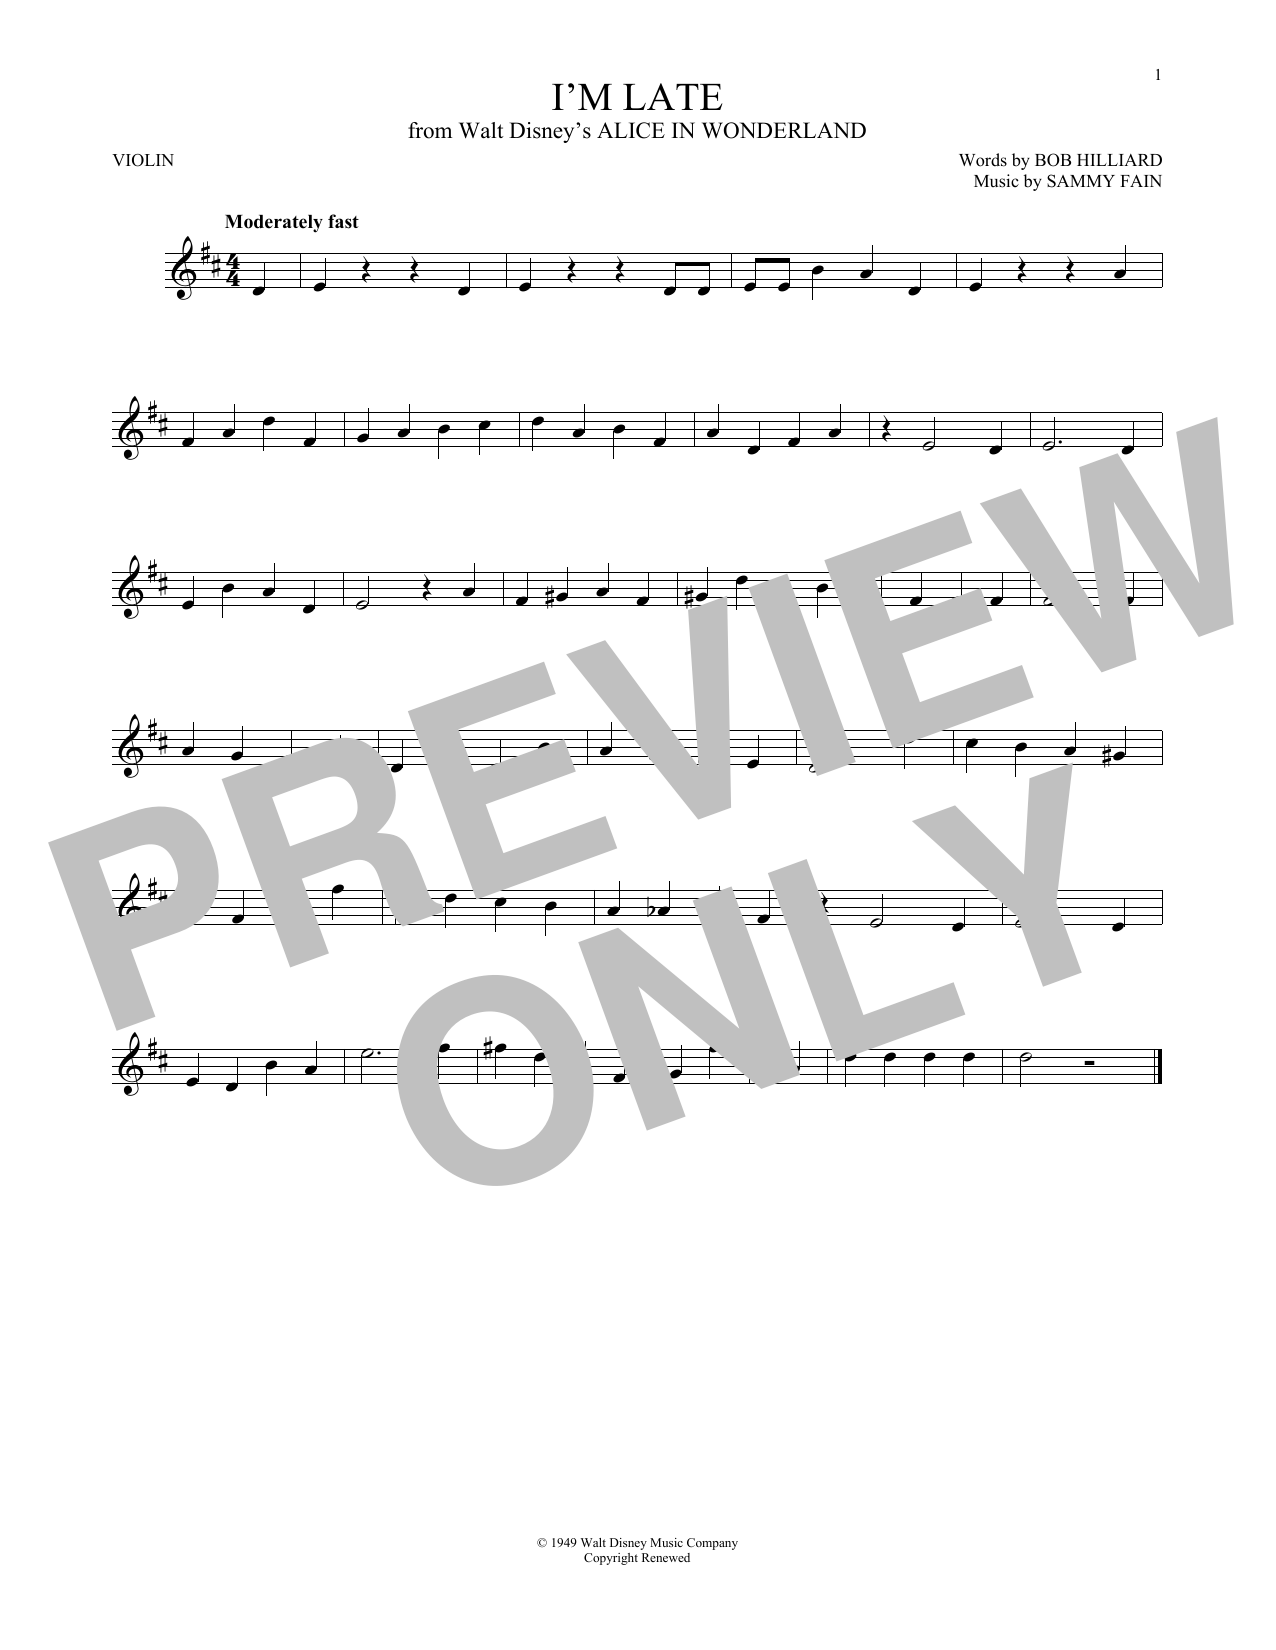 Download Bob Hilliard 'I'm Late' Digital Sheet Music Notes & Chords and start playing in minutes